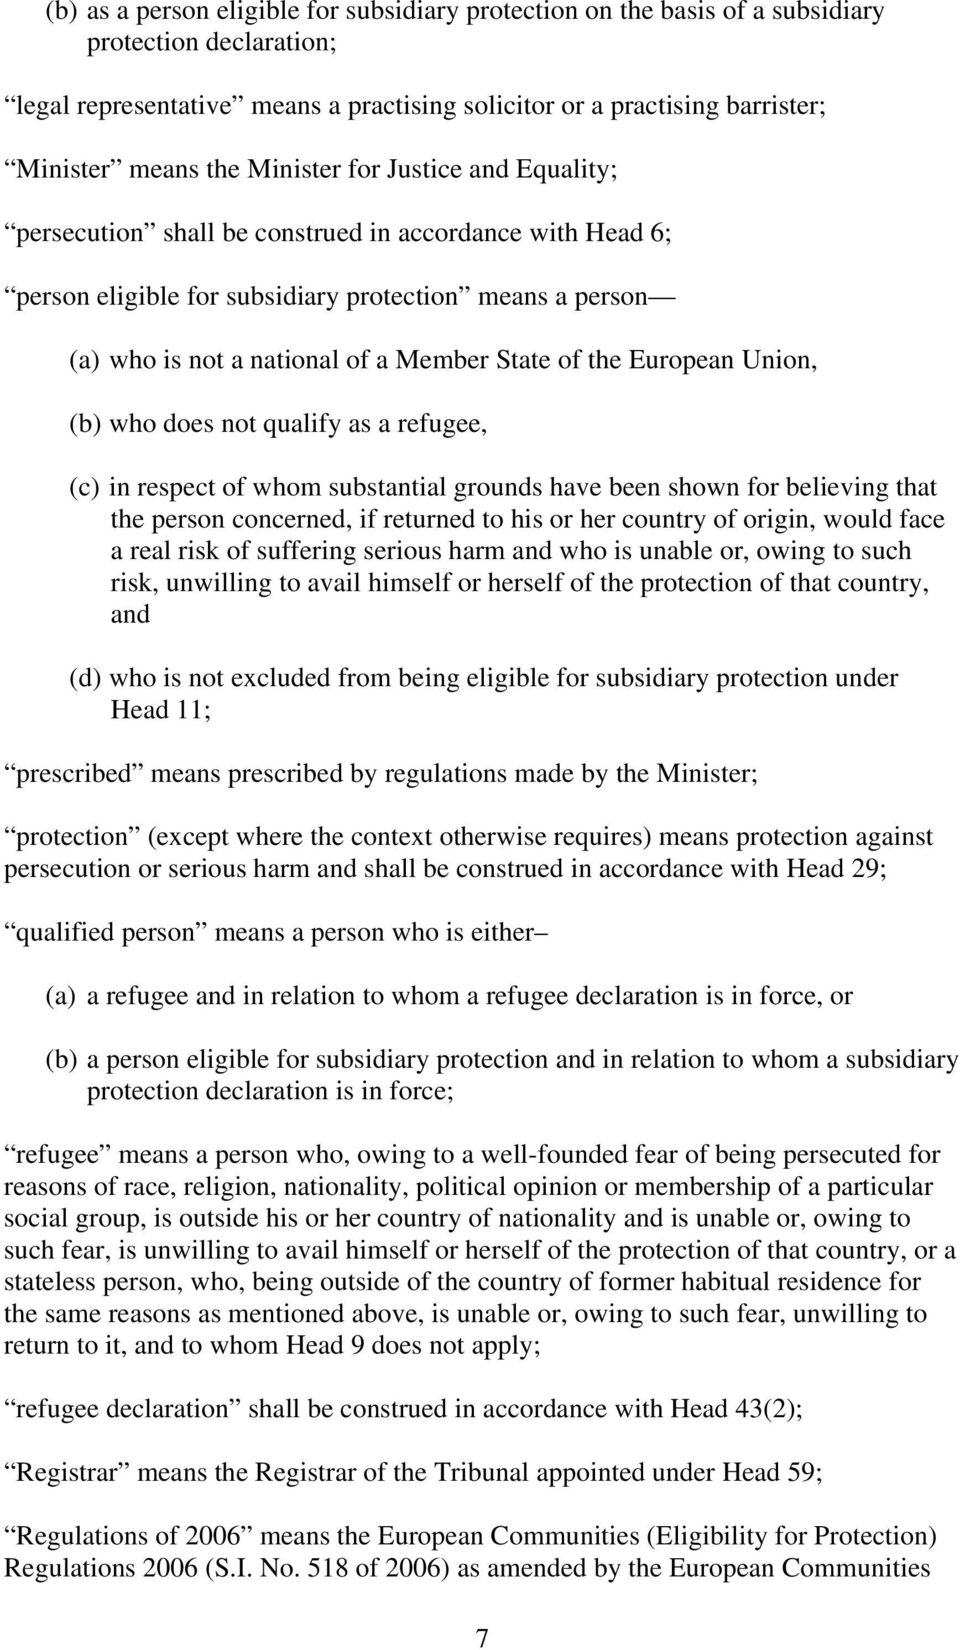 the European Union, (b) who does not qualify as a refugee, (c) in respect of whom substantial grounds have been shown for believing that the person concerned, if returned to his or her country of